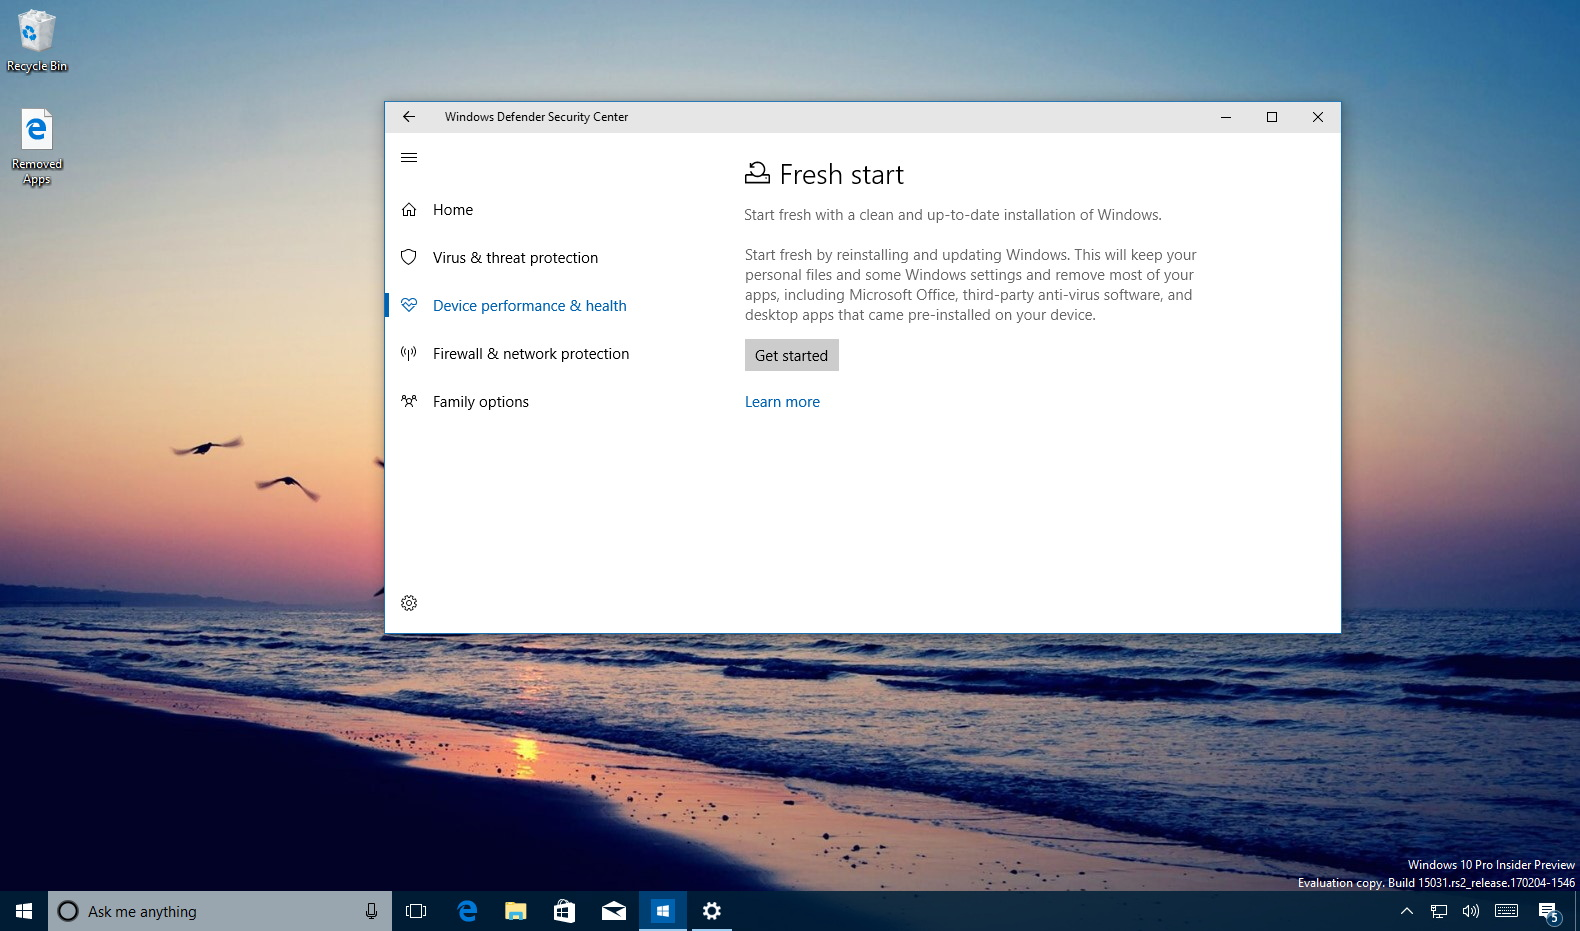 Reinstall and update Windows 10 using Windows Defender Security Center